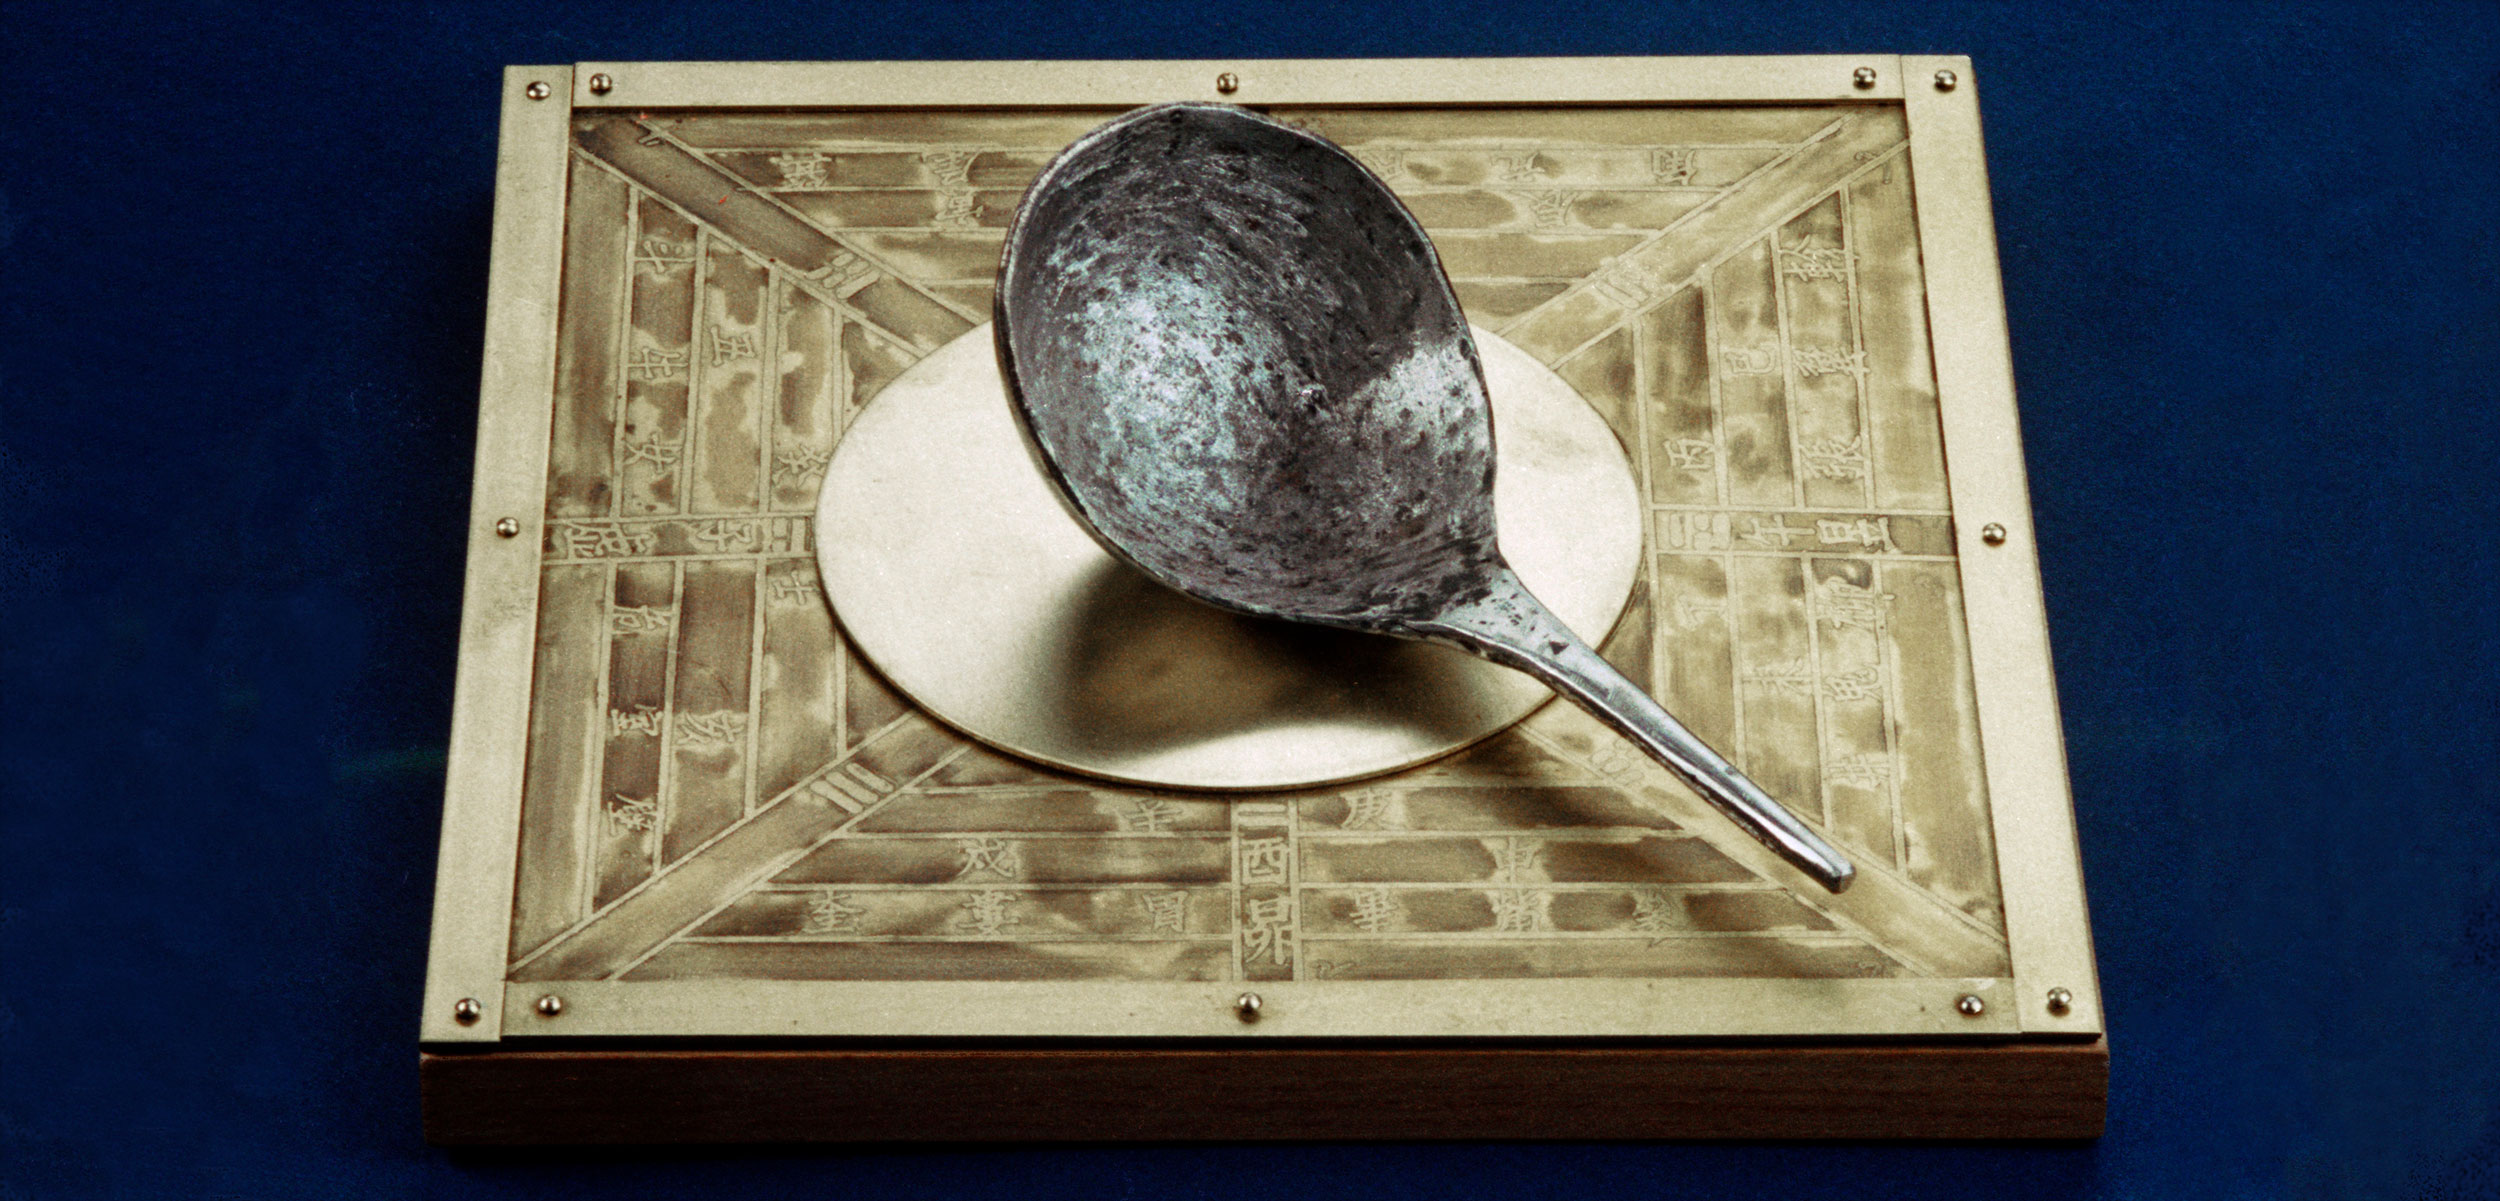 modern replica of a south pointing spoon, an early compass